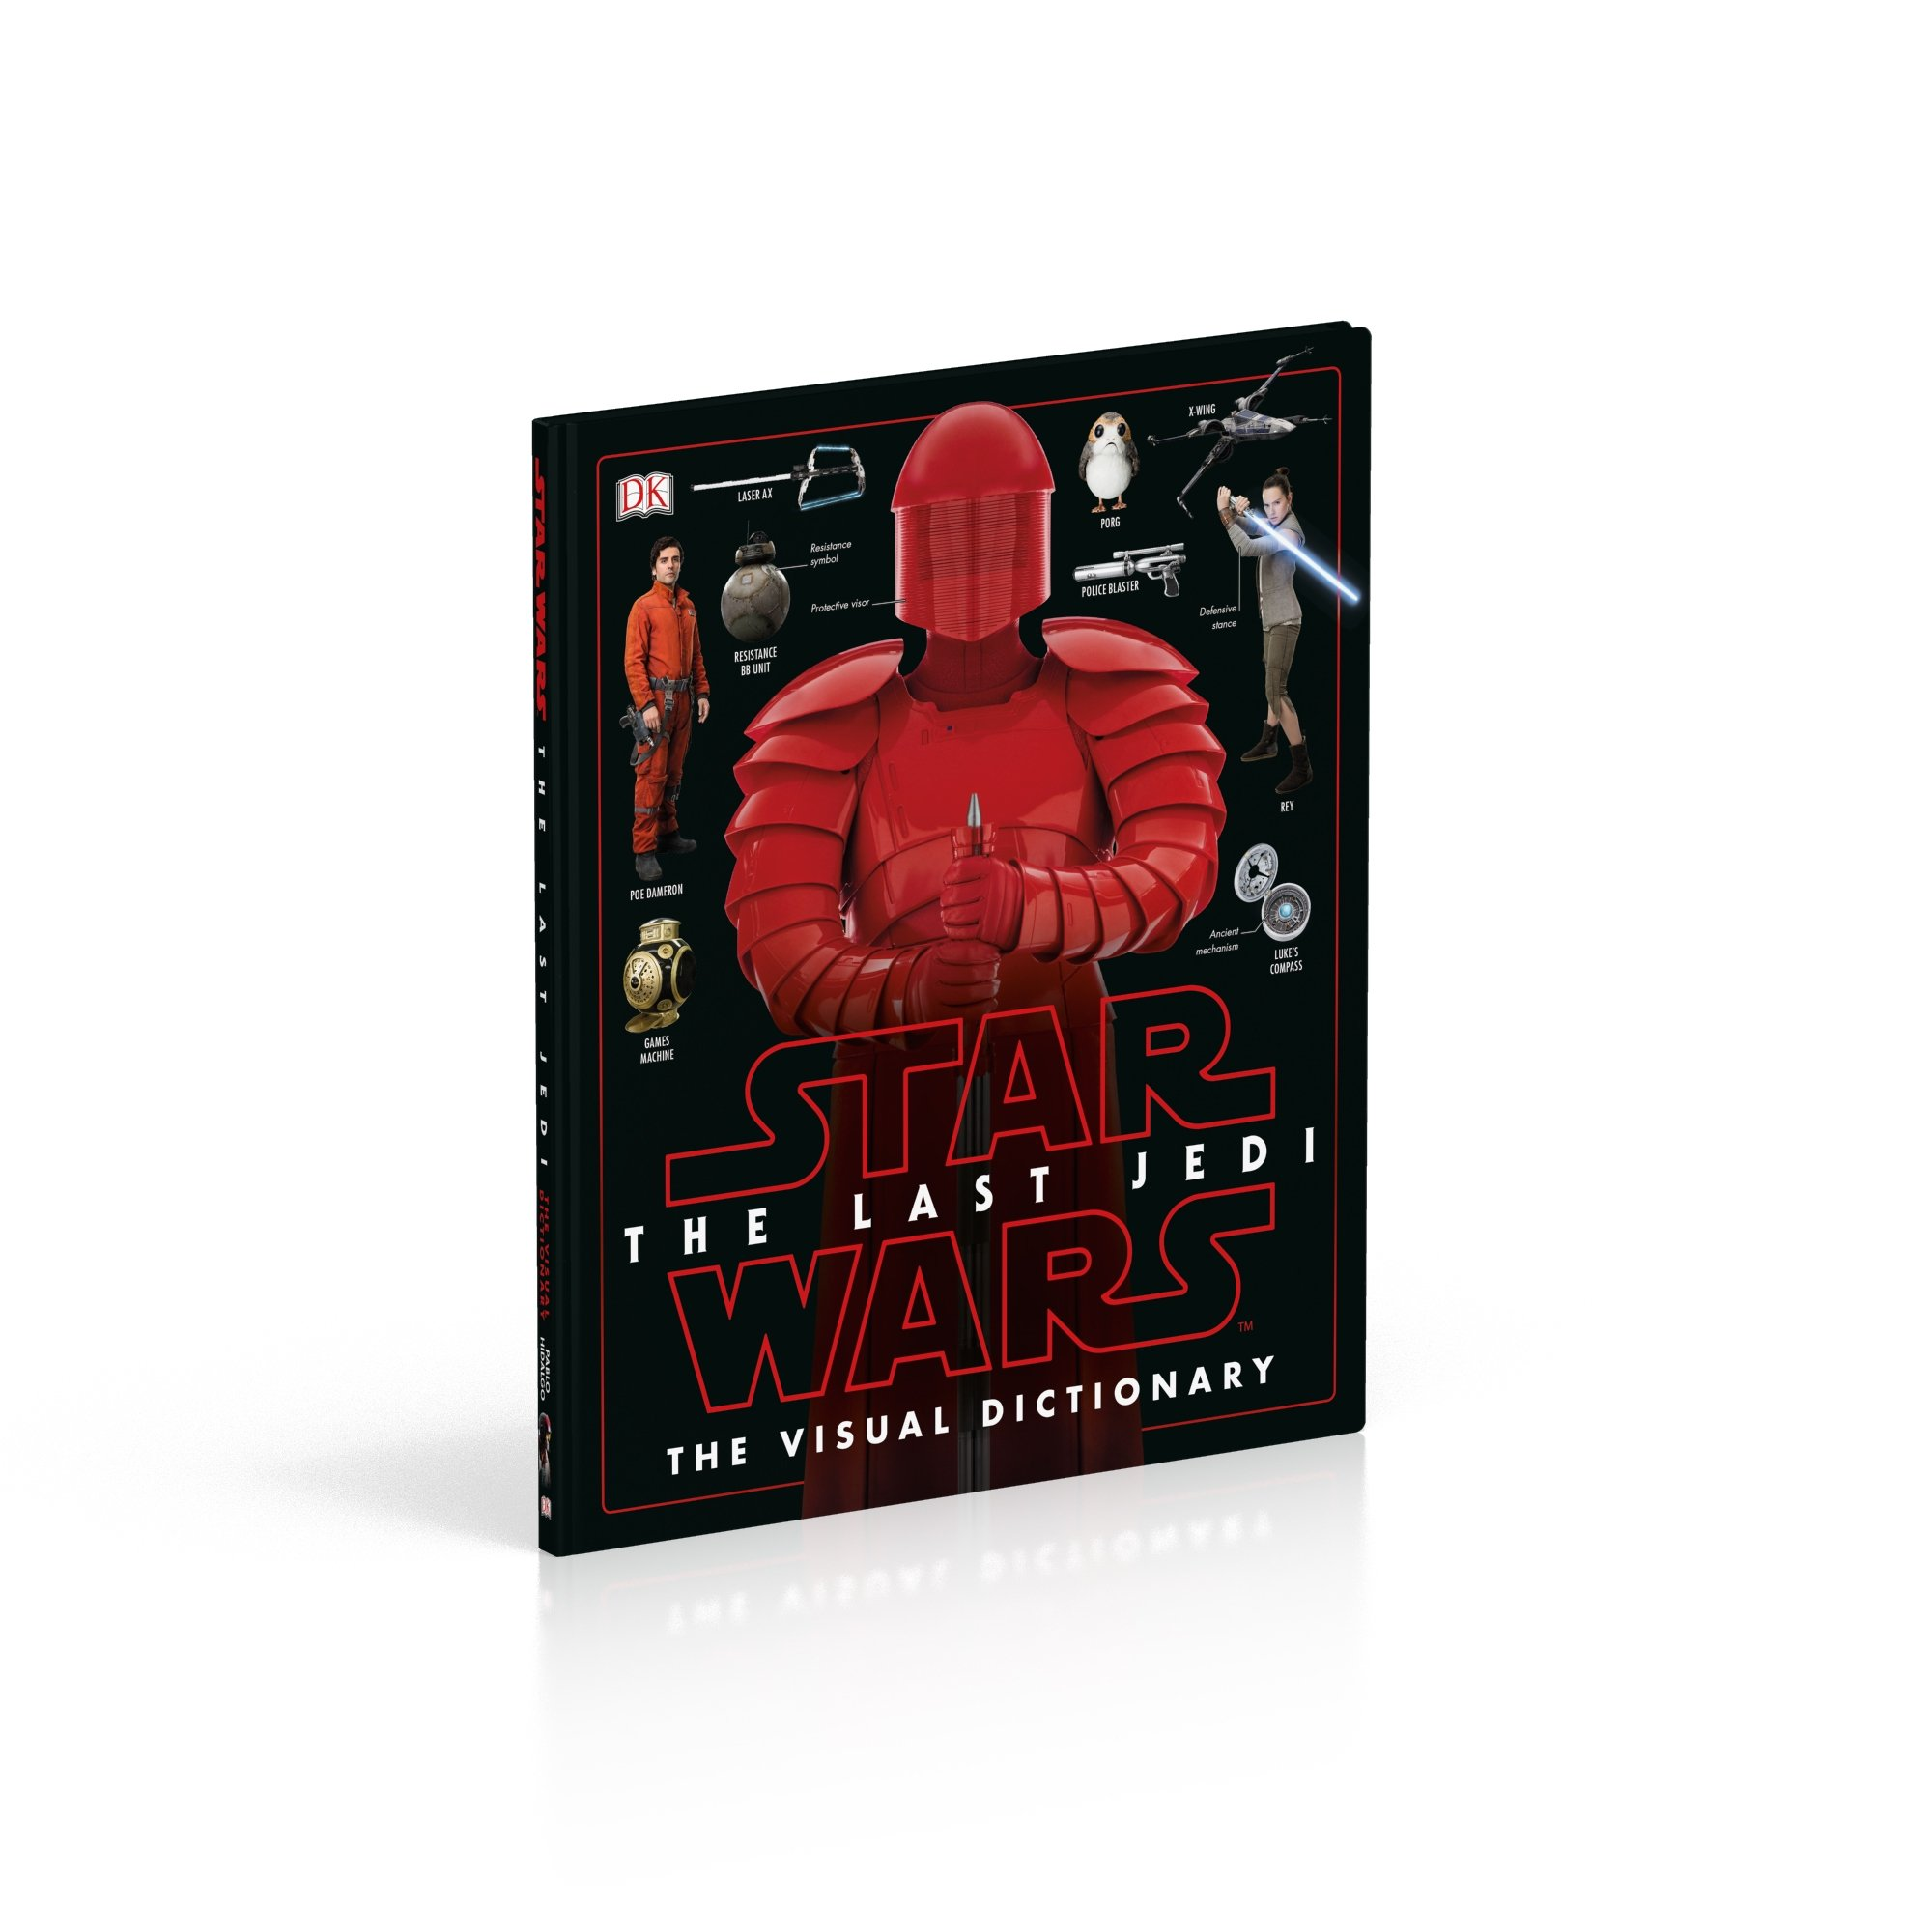 Star Wars The Last Jedi  The Visual Dictionary by DK Publishing (Image #6)